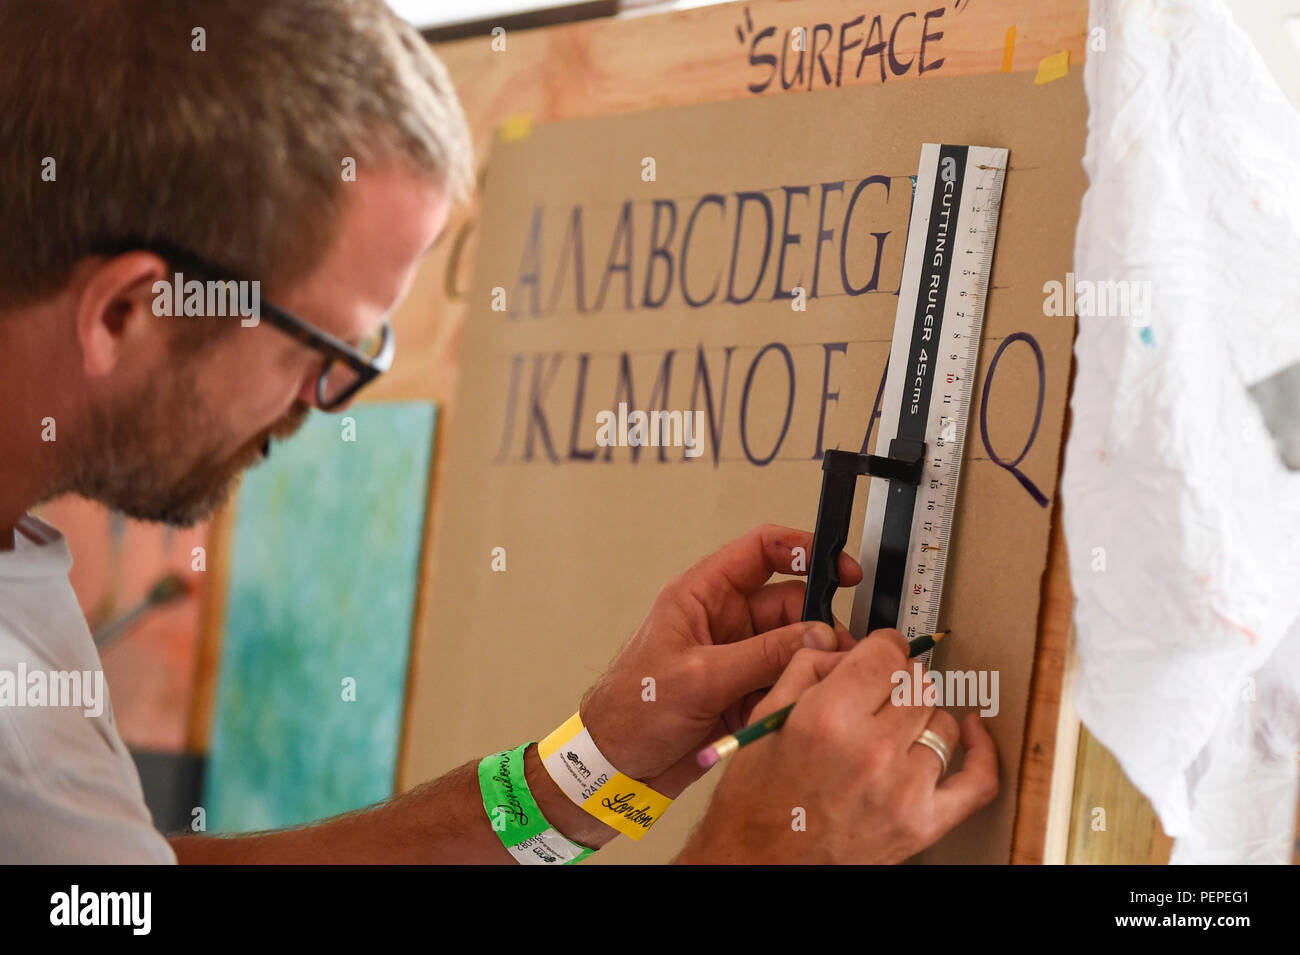 London, UK.  17 August 2018. A signwriter practices at 'Letterheads 2018:  London Calling', a gathering of international professional signwriters and lettering artists from over 30 countries.  Signwriters can network and learn new skills and visitors can see signwriting in action.  The event is taking place at the Bargehouse, Oxo Tower Wharf in central London until 19 August.  Credit: Stephen Chung / Alamy Live News - Stock Image